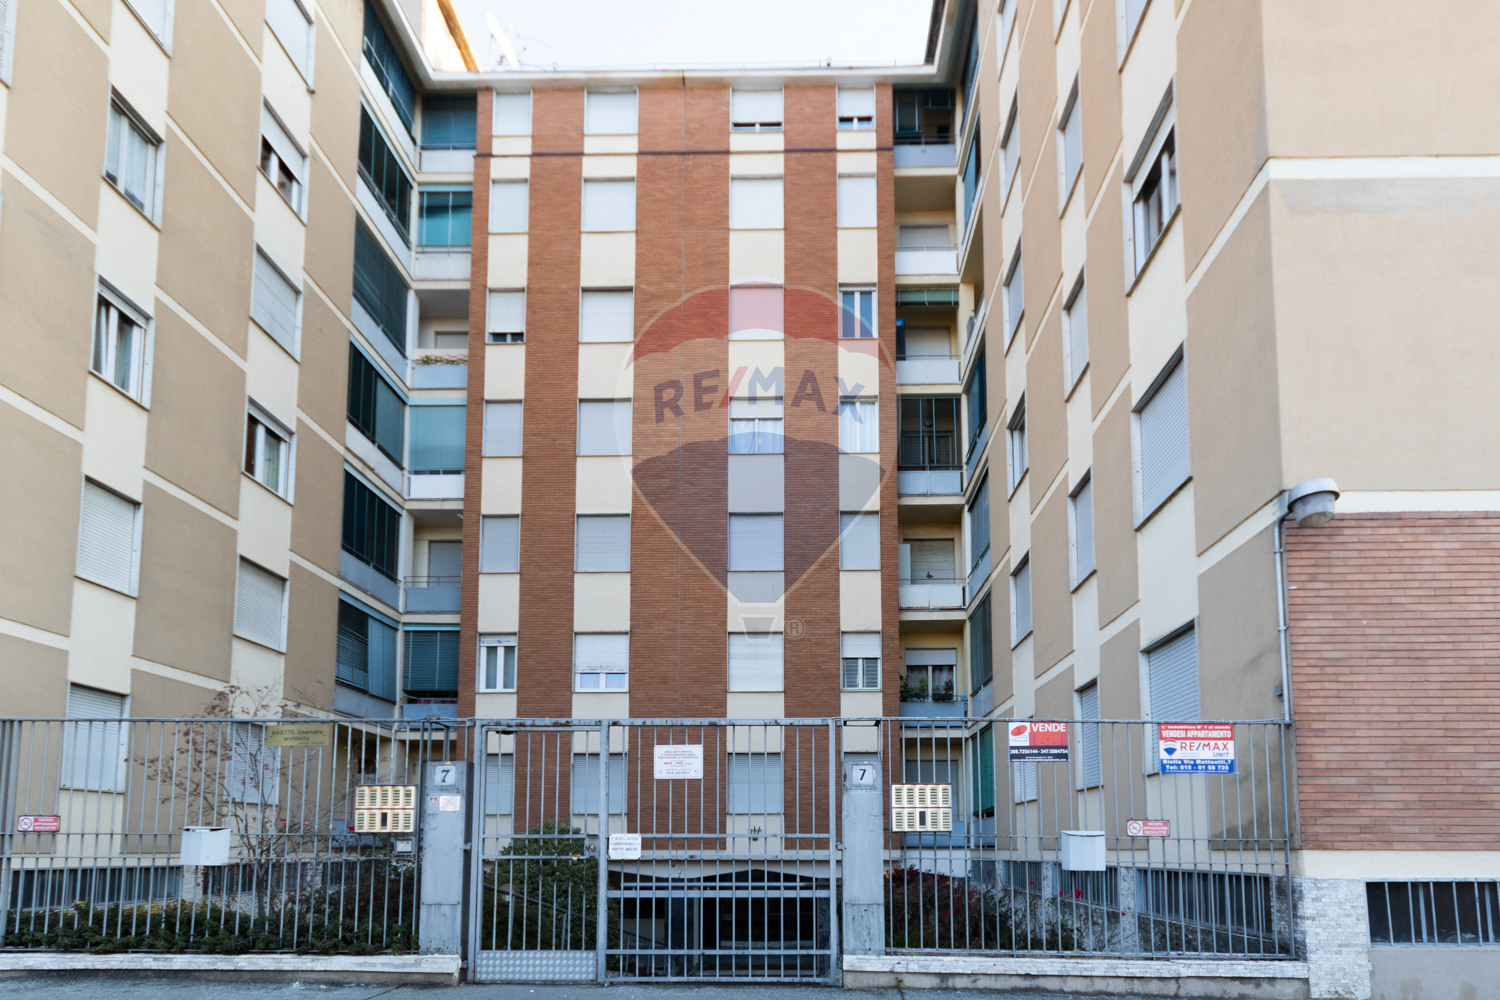 biella vendita quart: semicentro re-max-unit